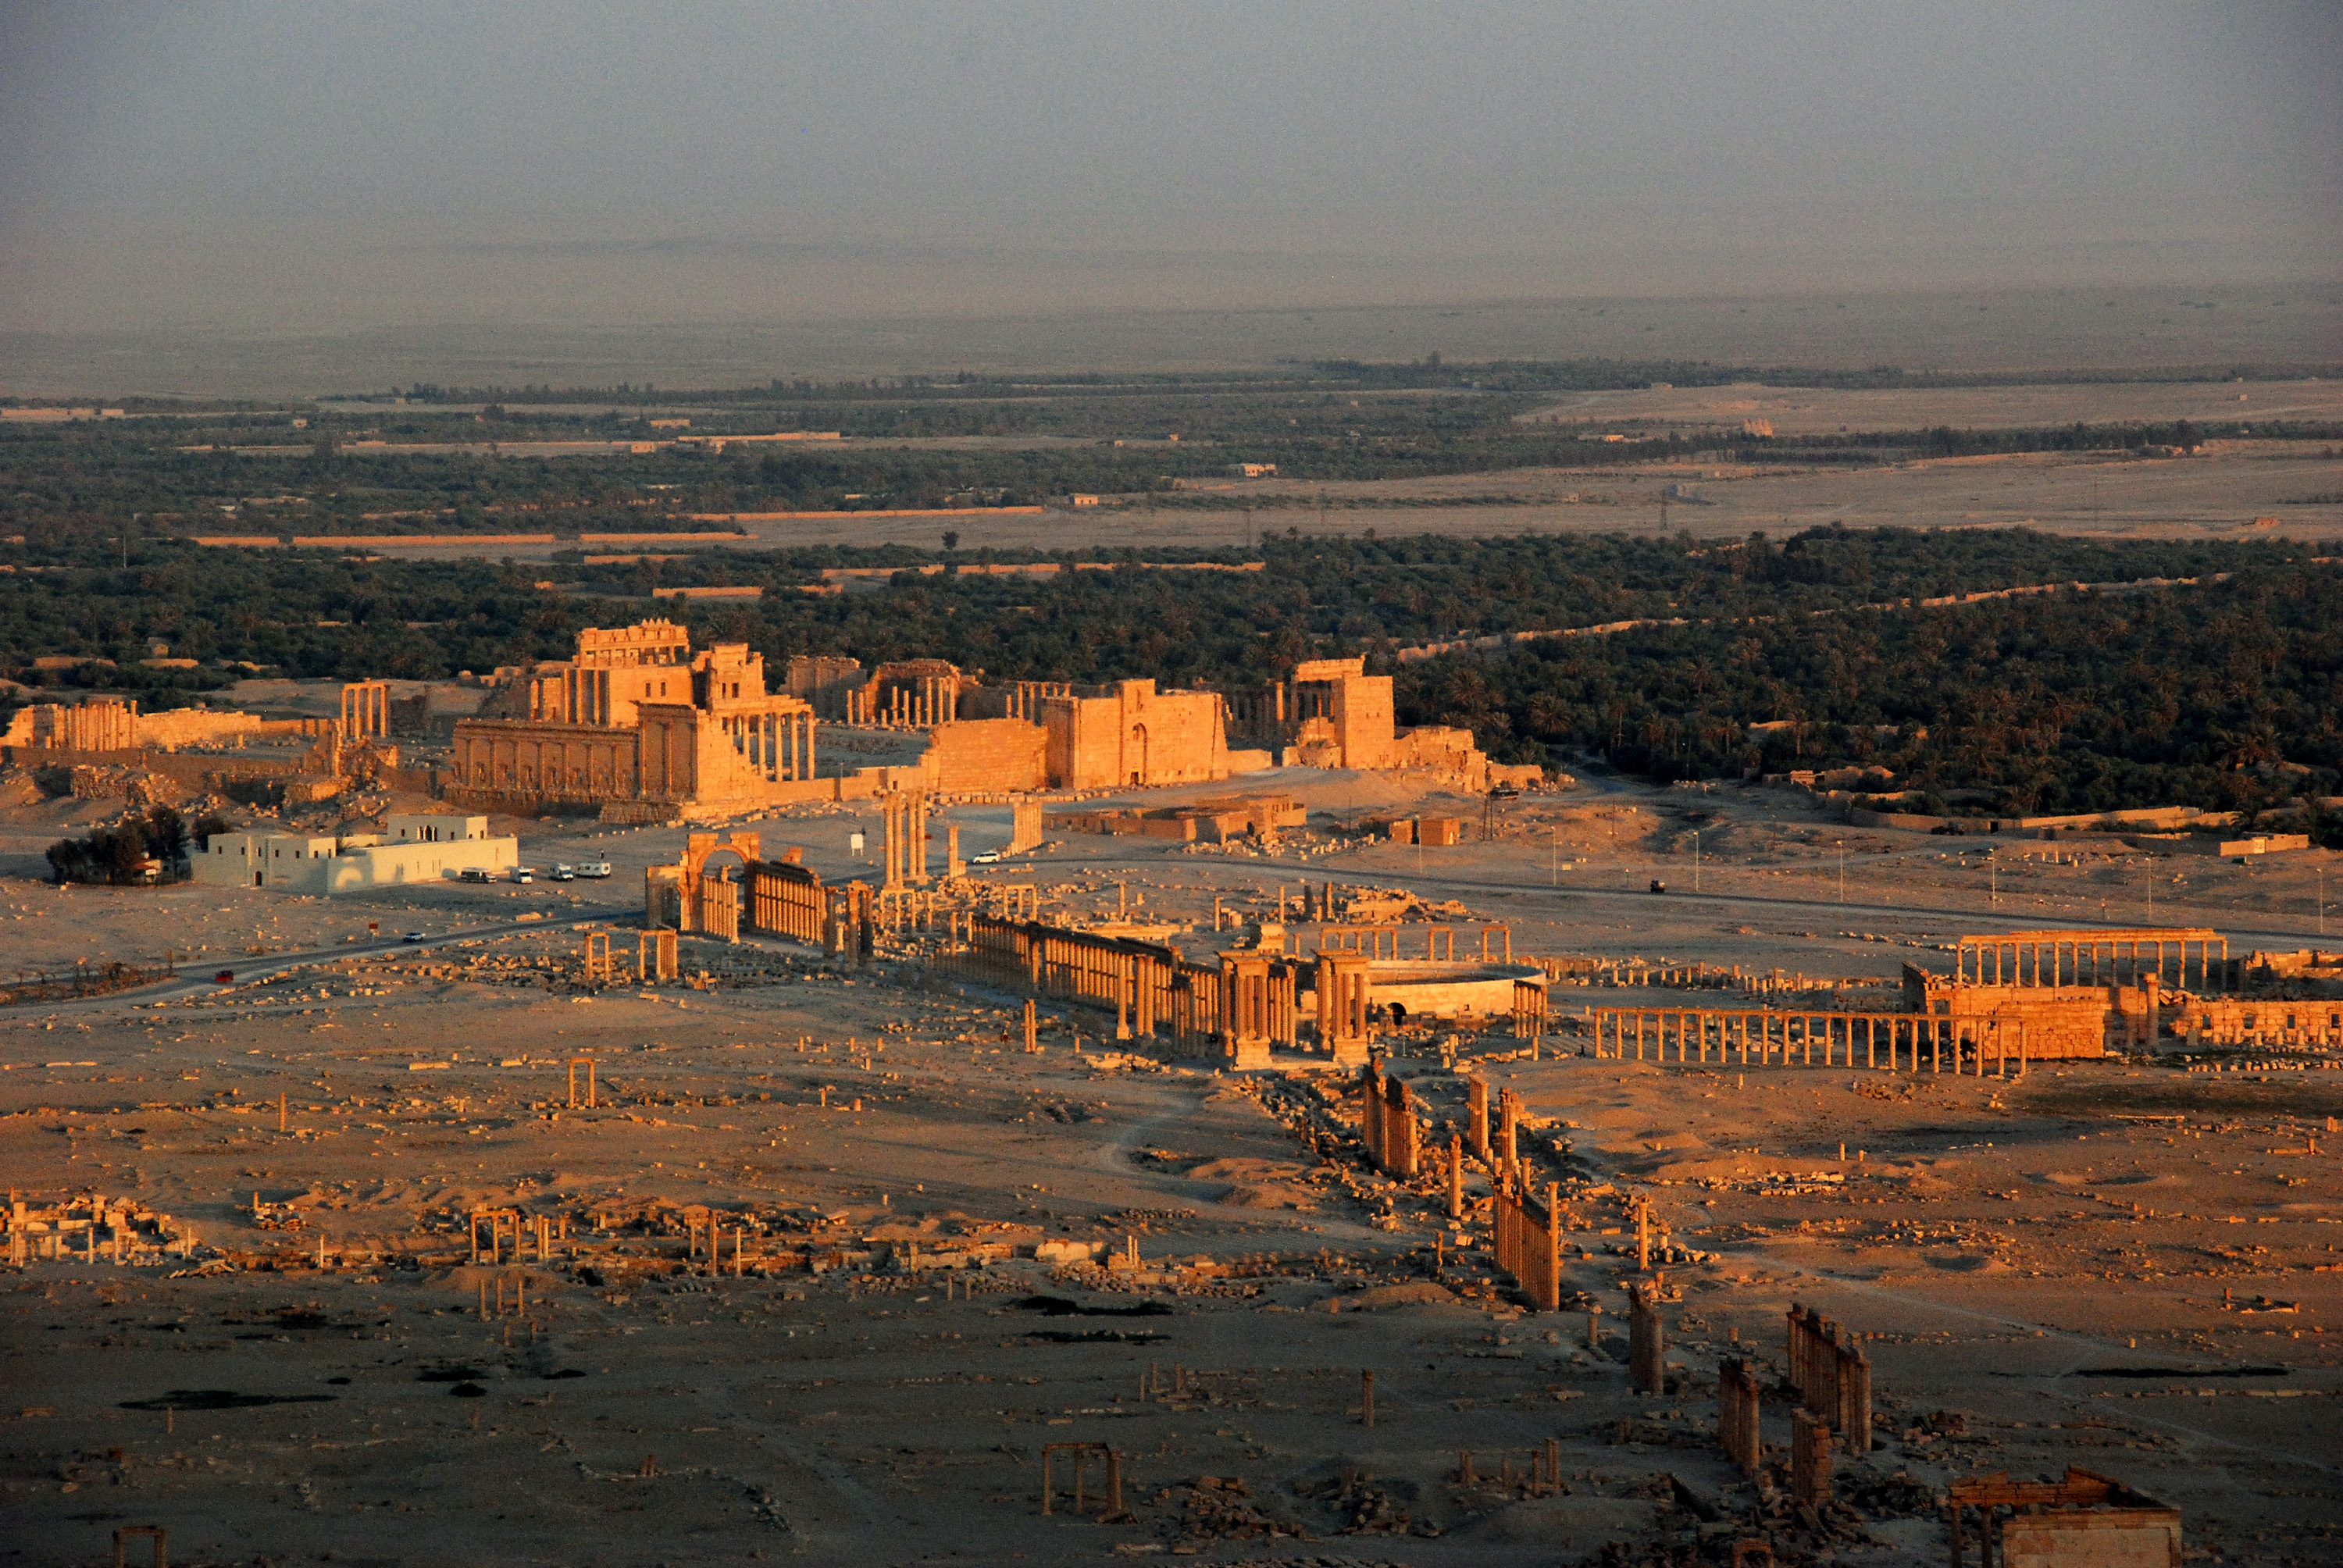 Palmyra (Quelle: James Gordon via Wikimedia Commons unter Lizenz CC-BY-SA 2.0)